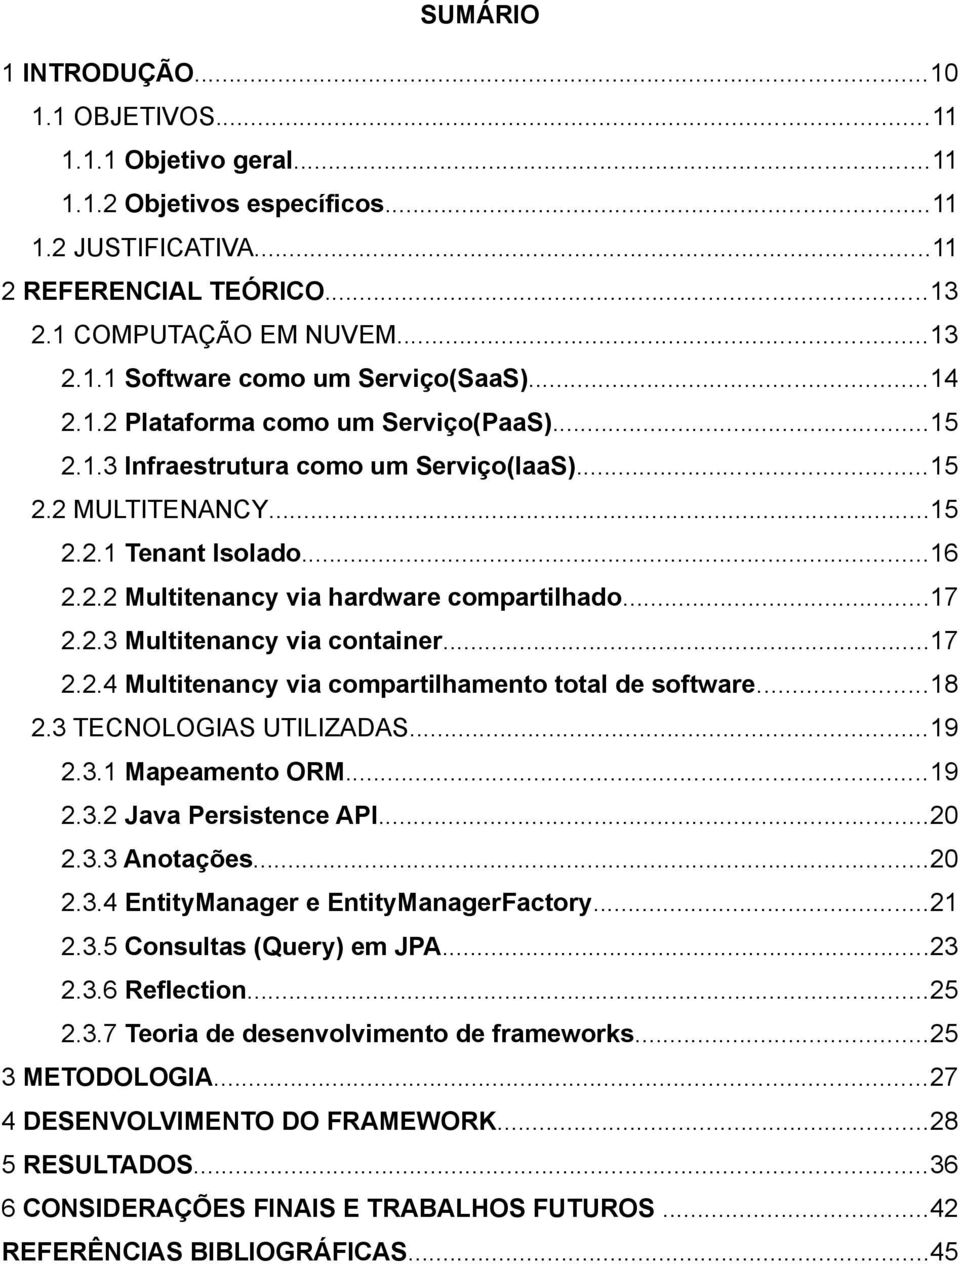 ..17 2.2.4 Multitenancy via compartilhamento total de software...18 2.3 TECNOLOGIAS UTILIZADAS...19 2.3.1 Mapeamento ORM...19 2.3.2 Java Persistence API...20 2.3.3 Anotações...20 2.3.4 EntityManager e EntityManagerFactory.